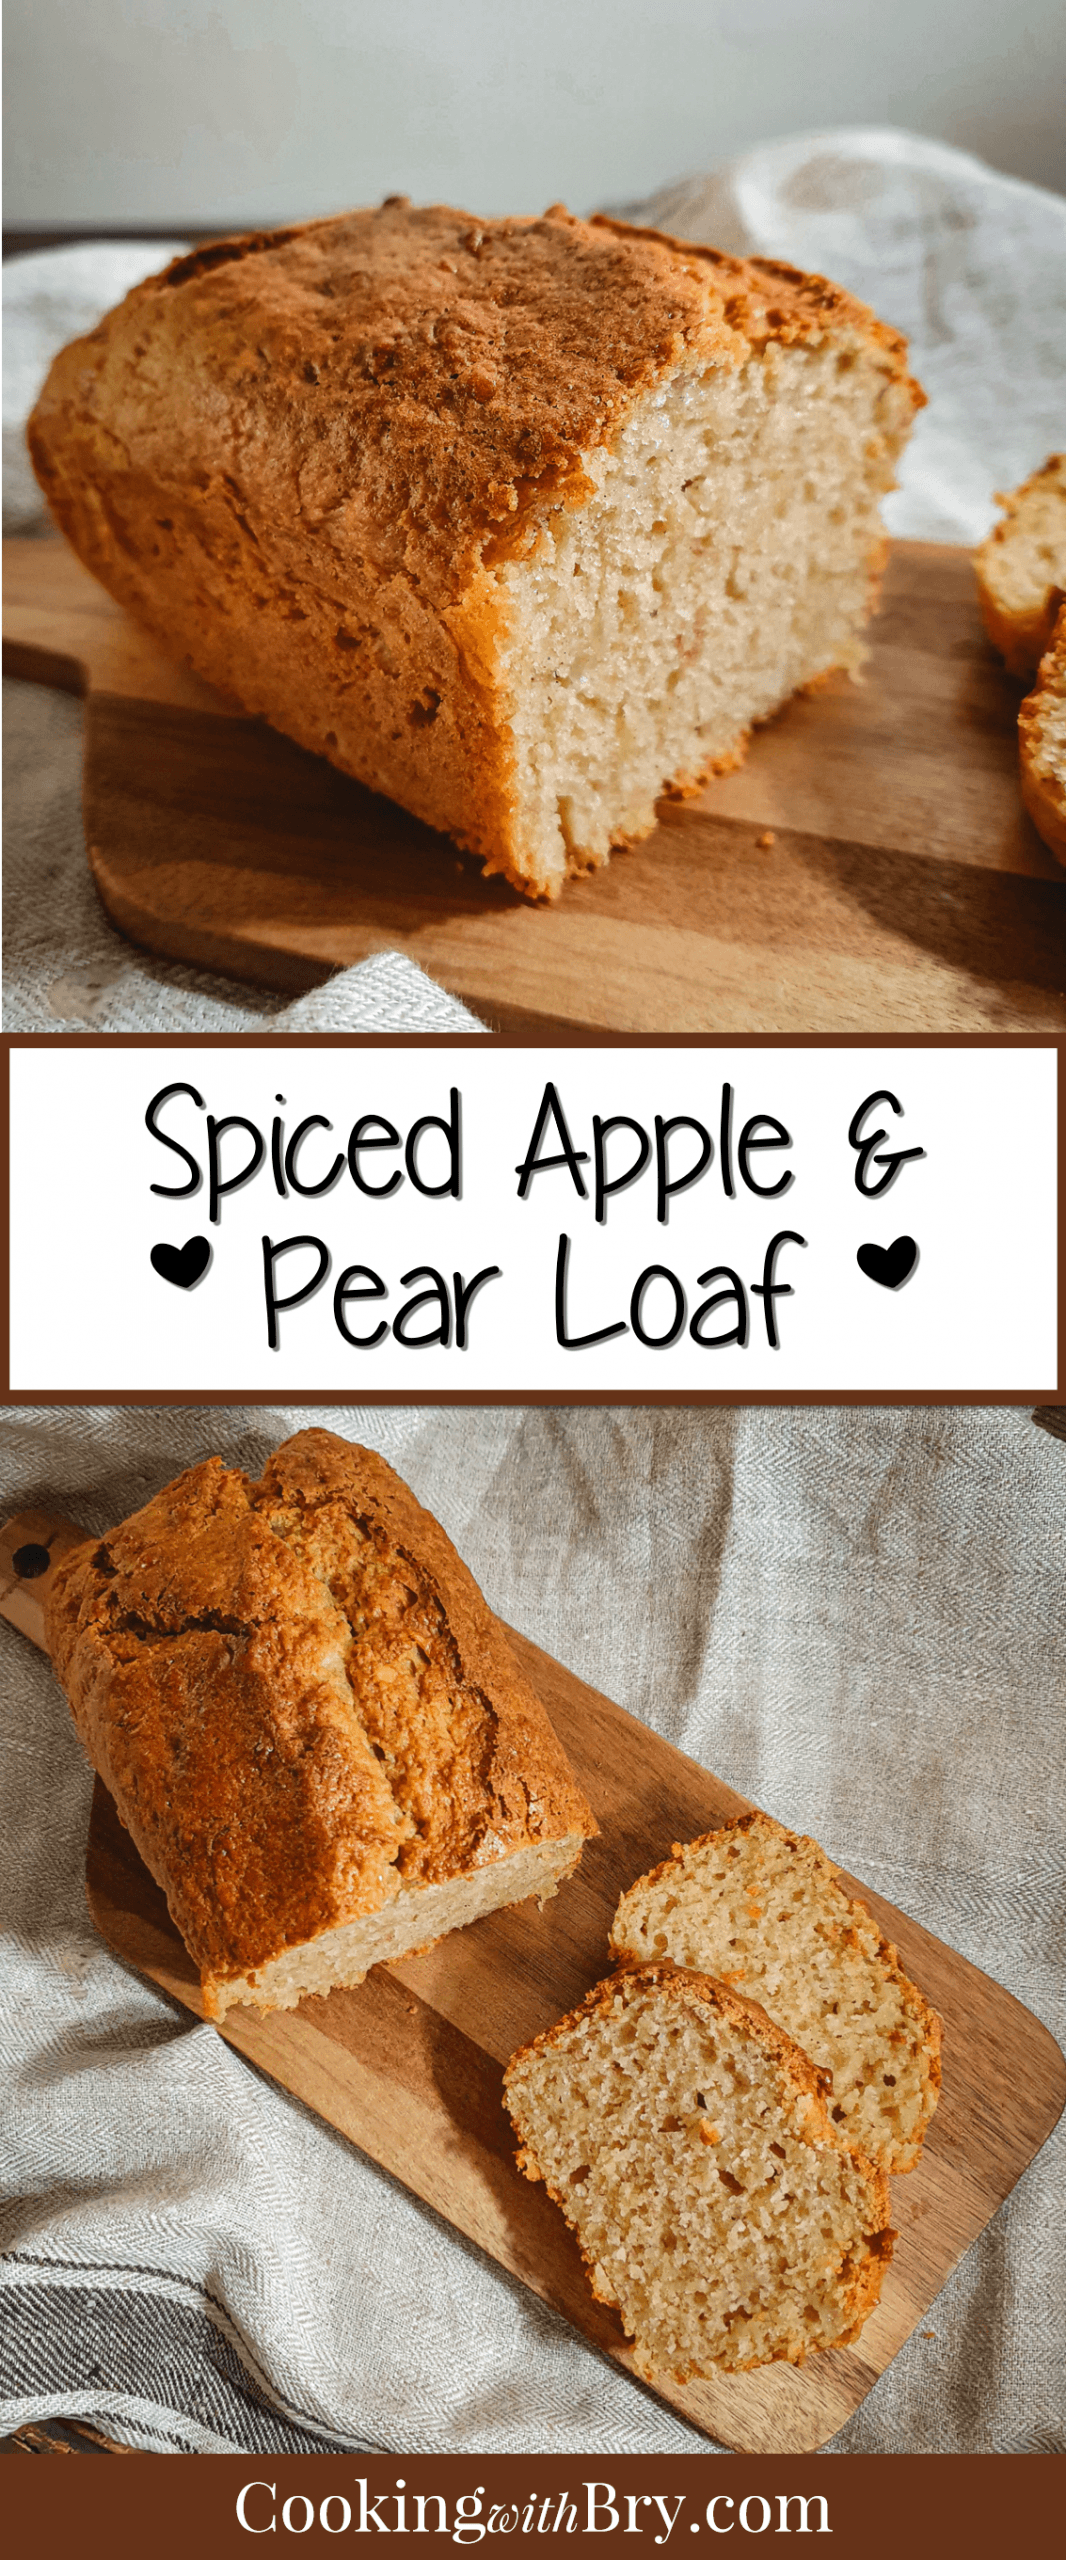 Spiced Apple & Pear Loaf is a classic British cake loaf with amazing spiced and apple & pear flavours. It's an easy way to add perfectly spiced flavours to your meal! #baking #cake #dessert #recipe #homebaked